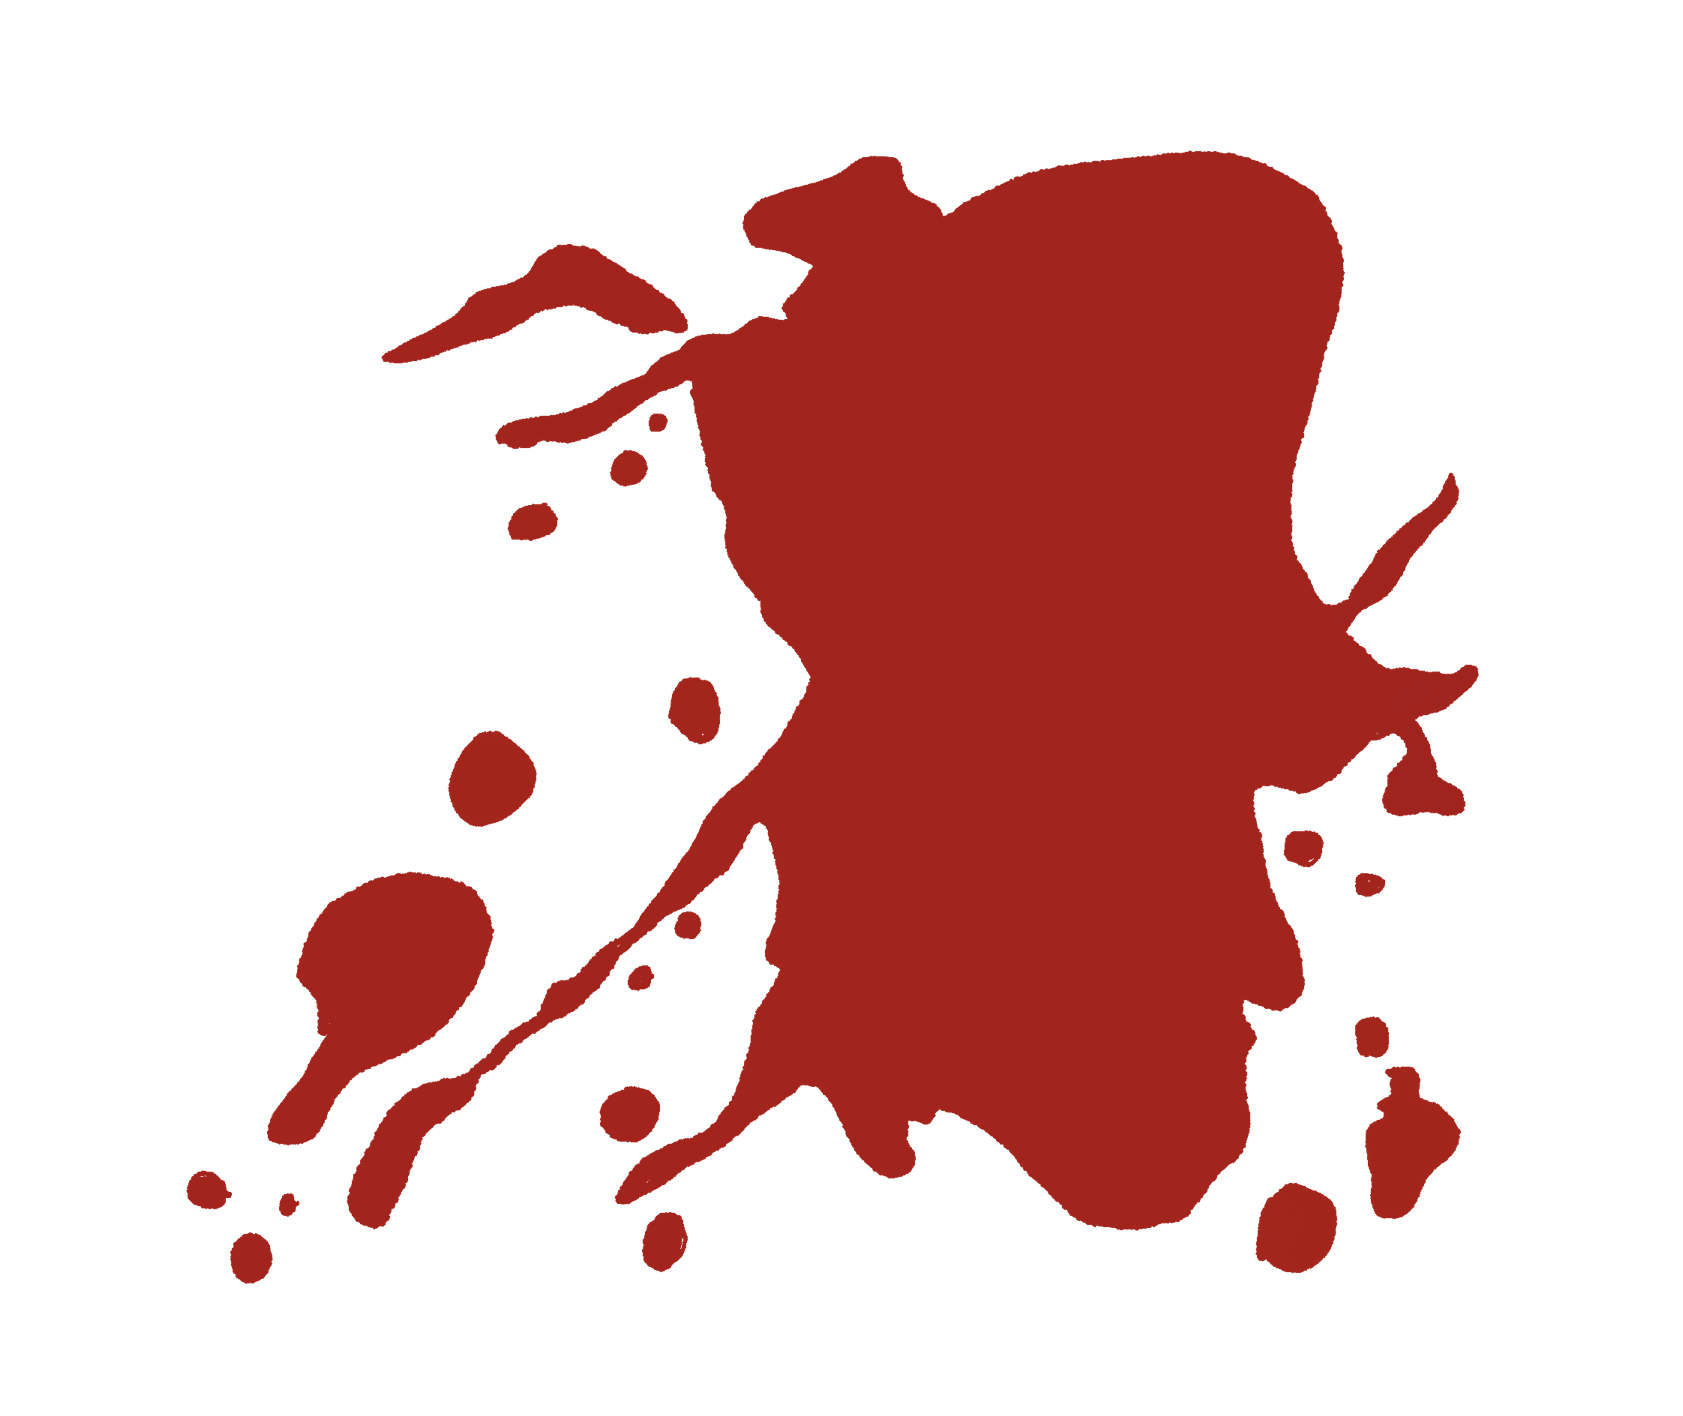 an illustrated spot of red blood on a white background